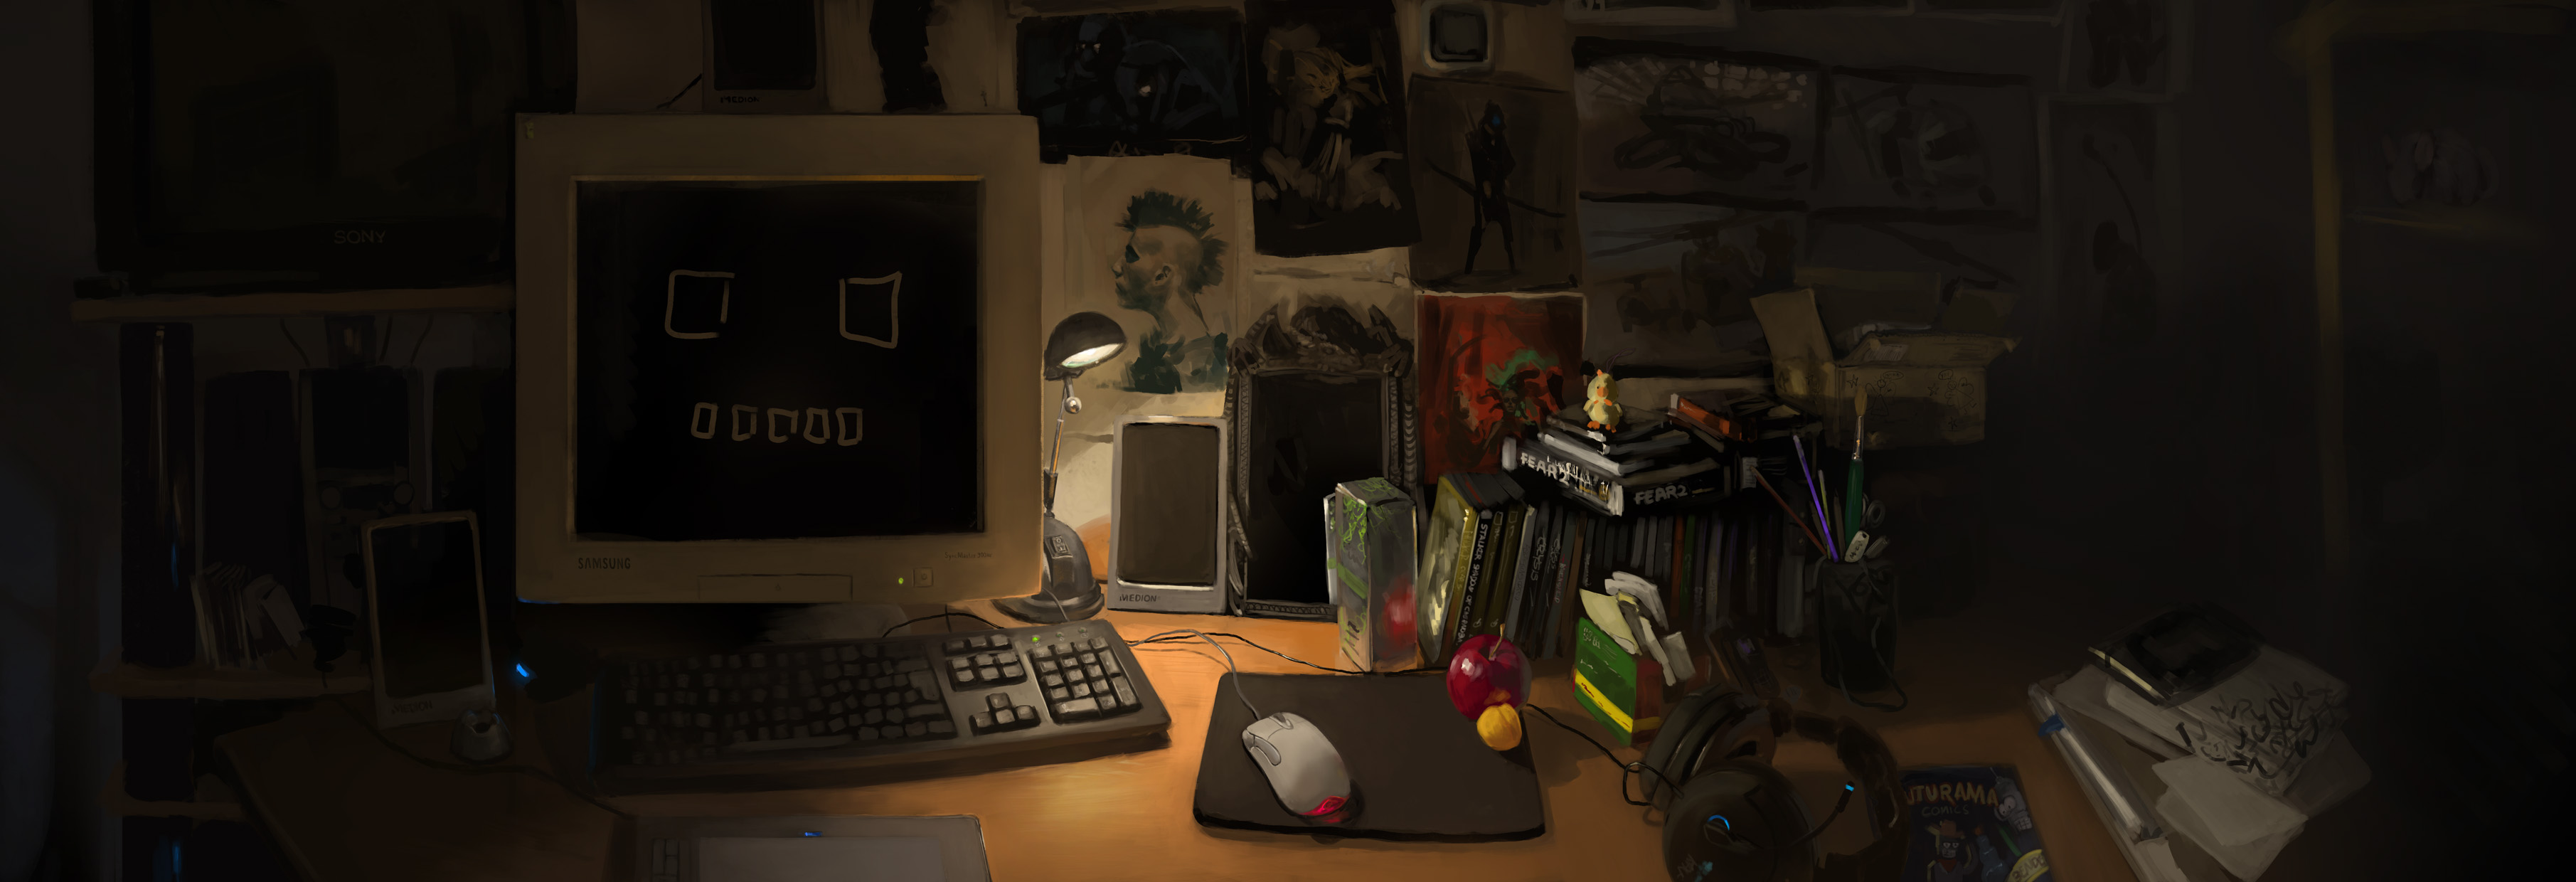 huhwn's desk by teyoliia